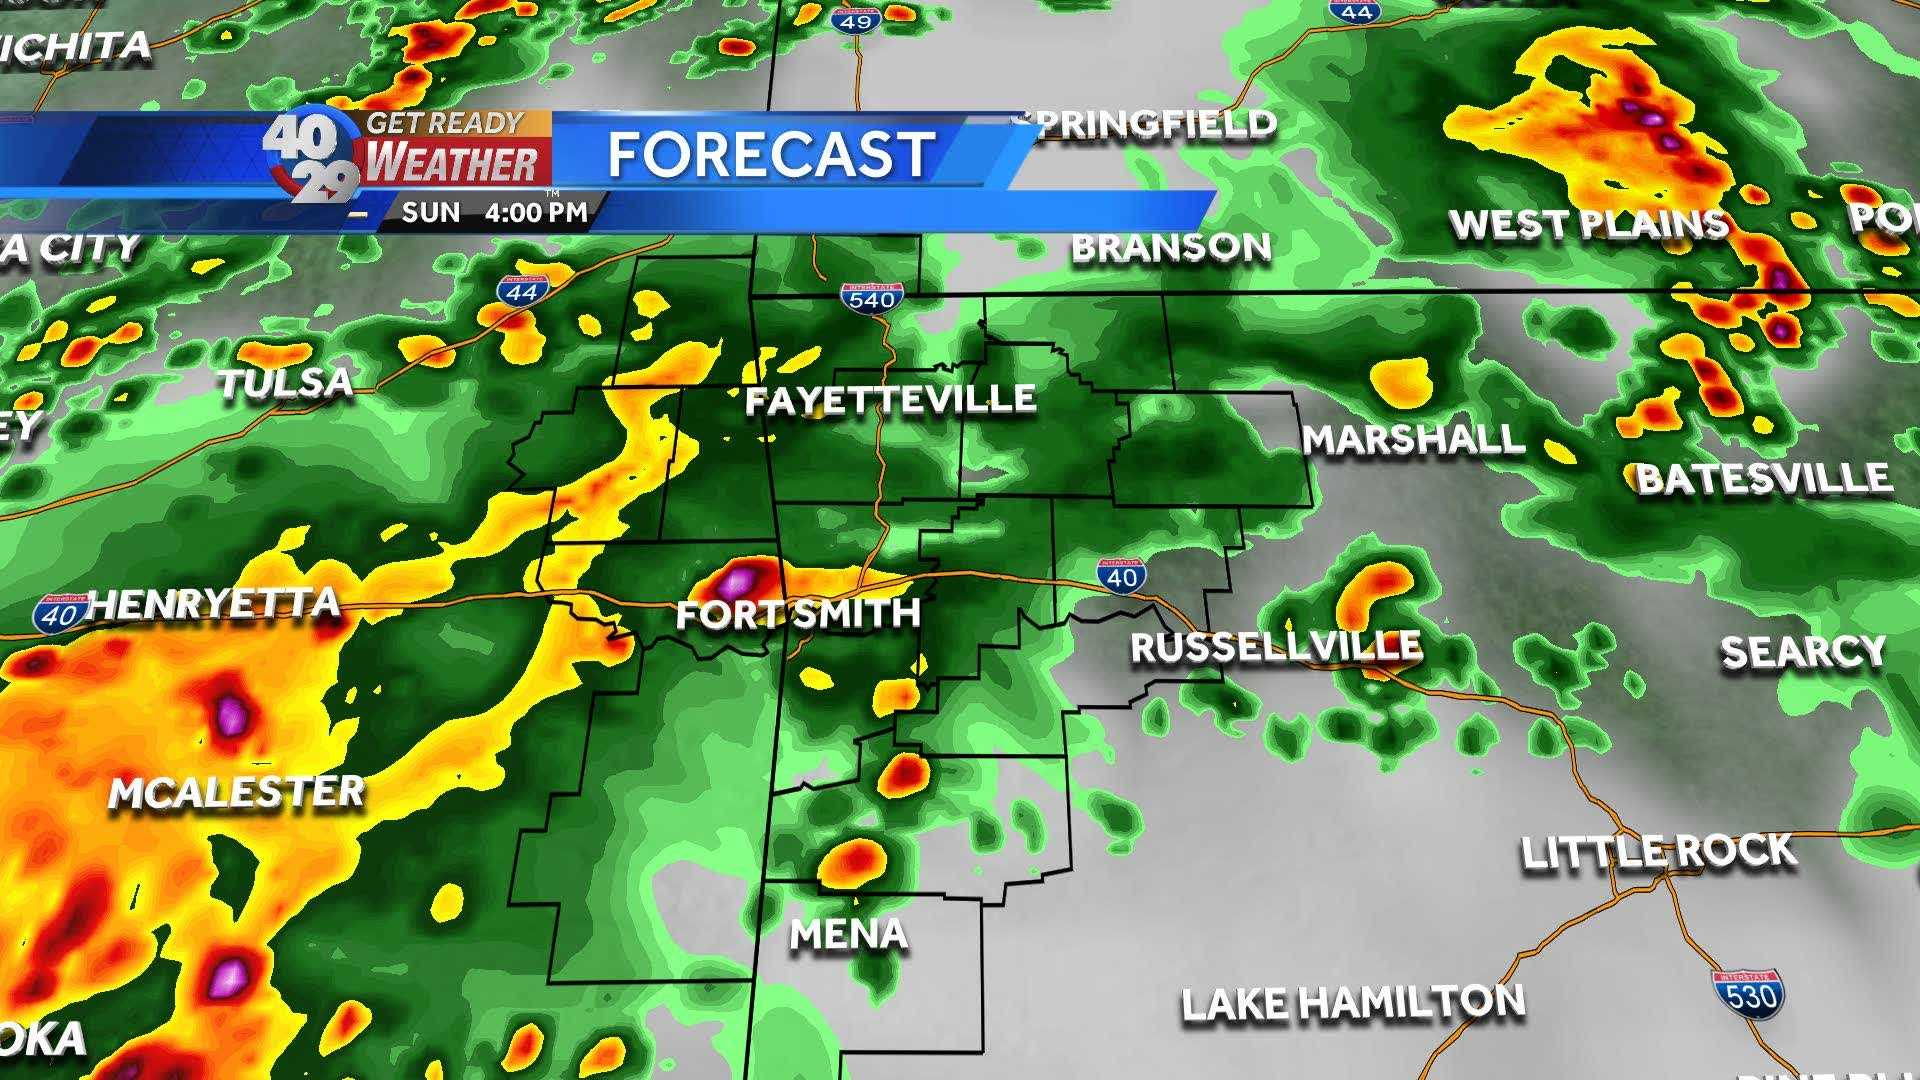 Here is the hour by hour video for Severe Weather Sunday